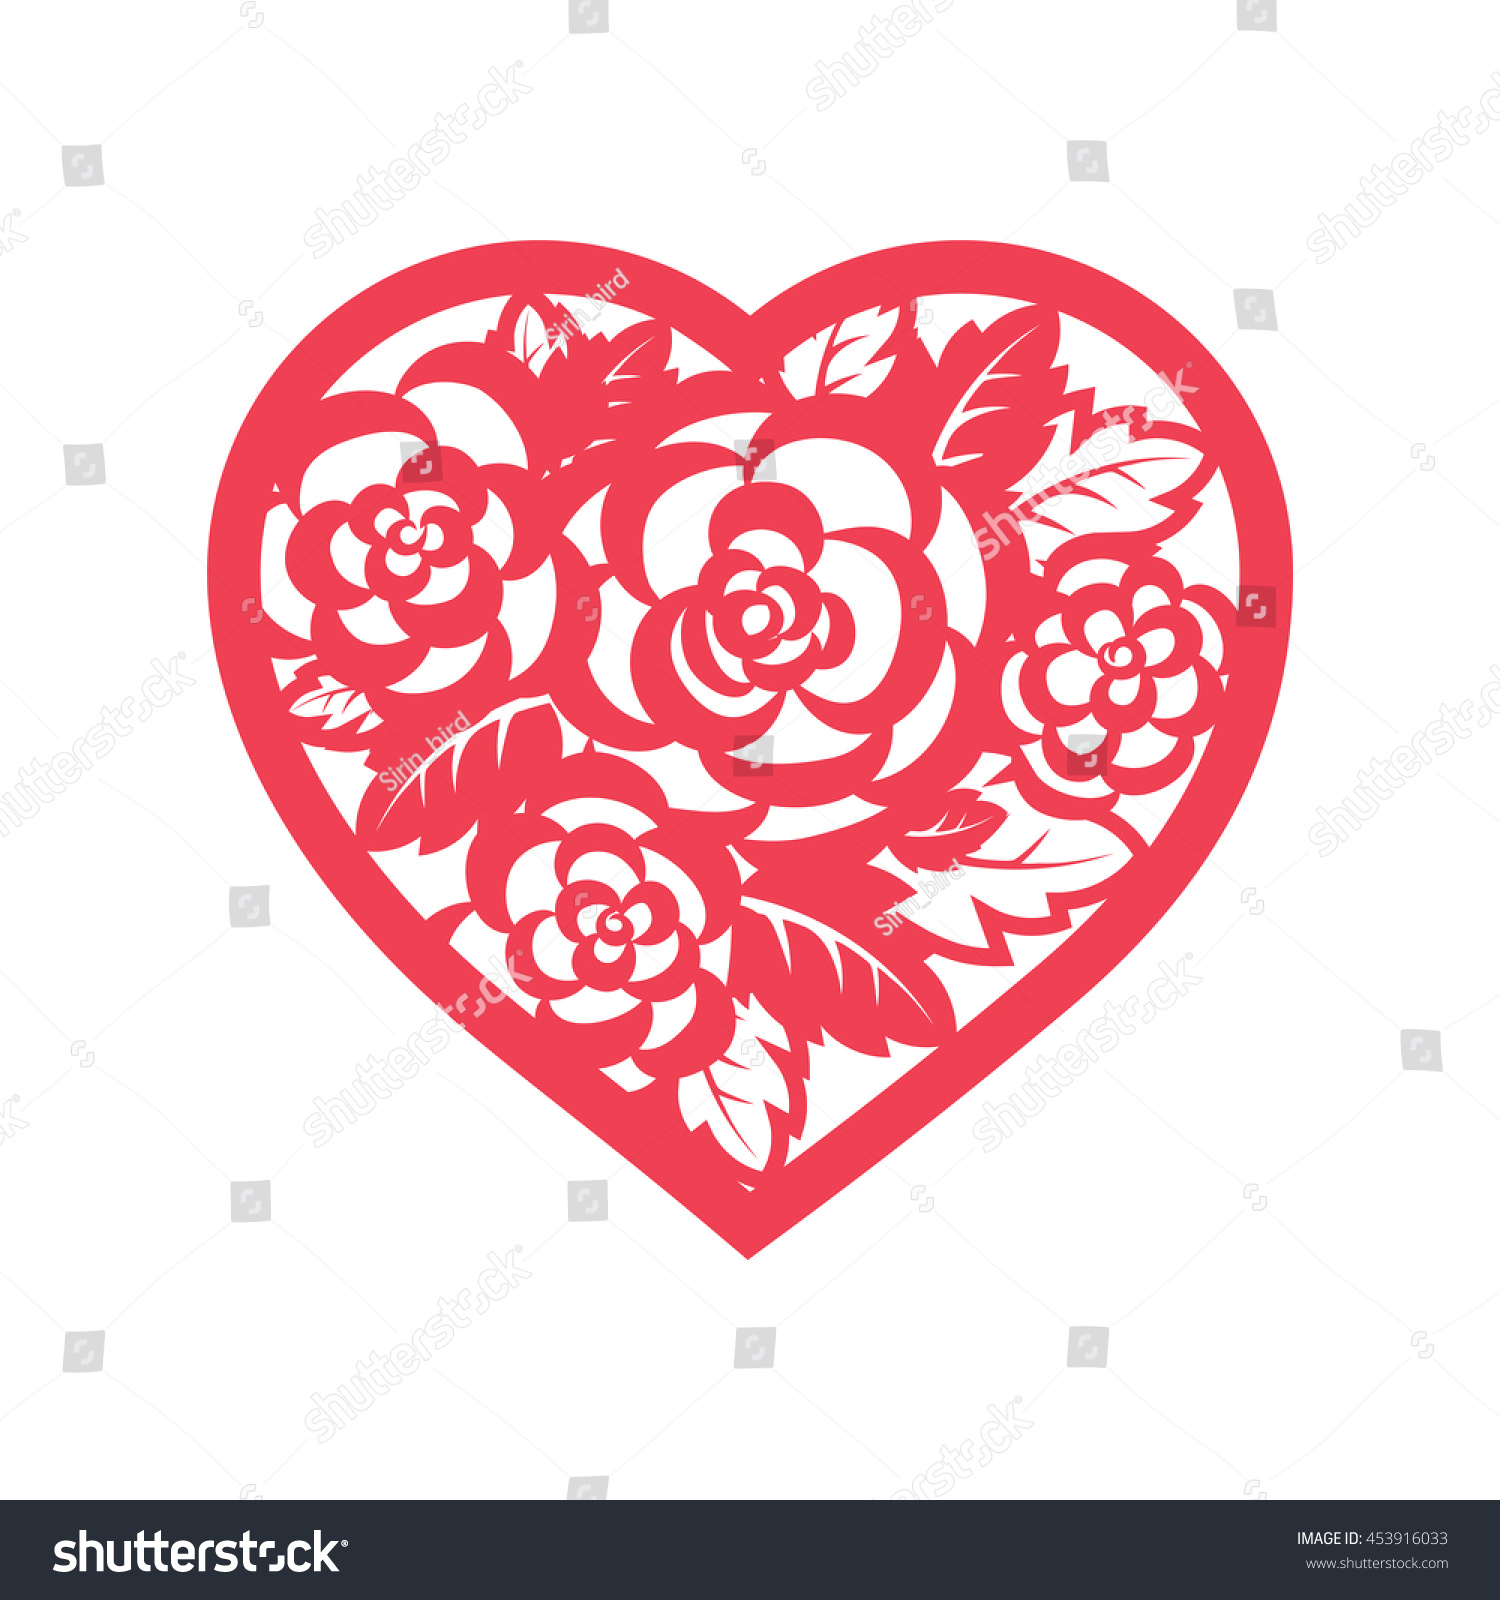 Template Heart Flowers Laser Cutting Roses Stock Vector 453916033 ...